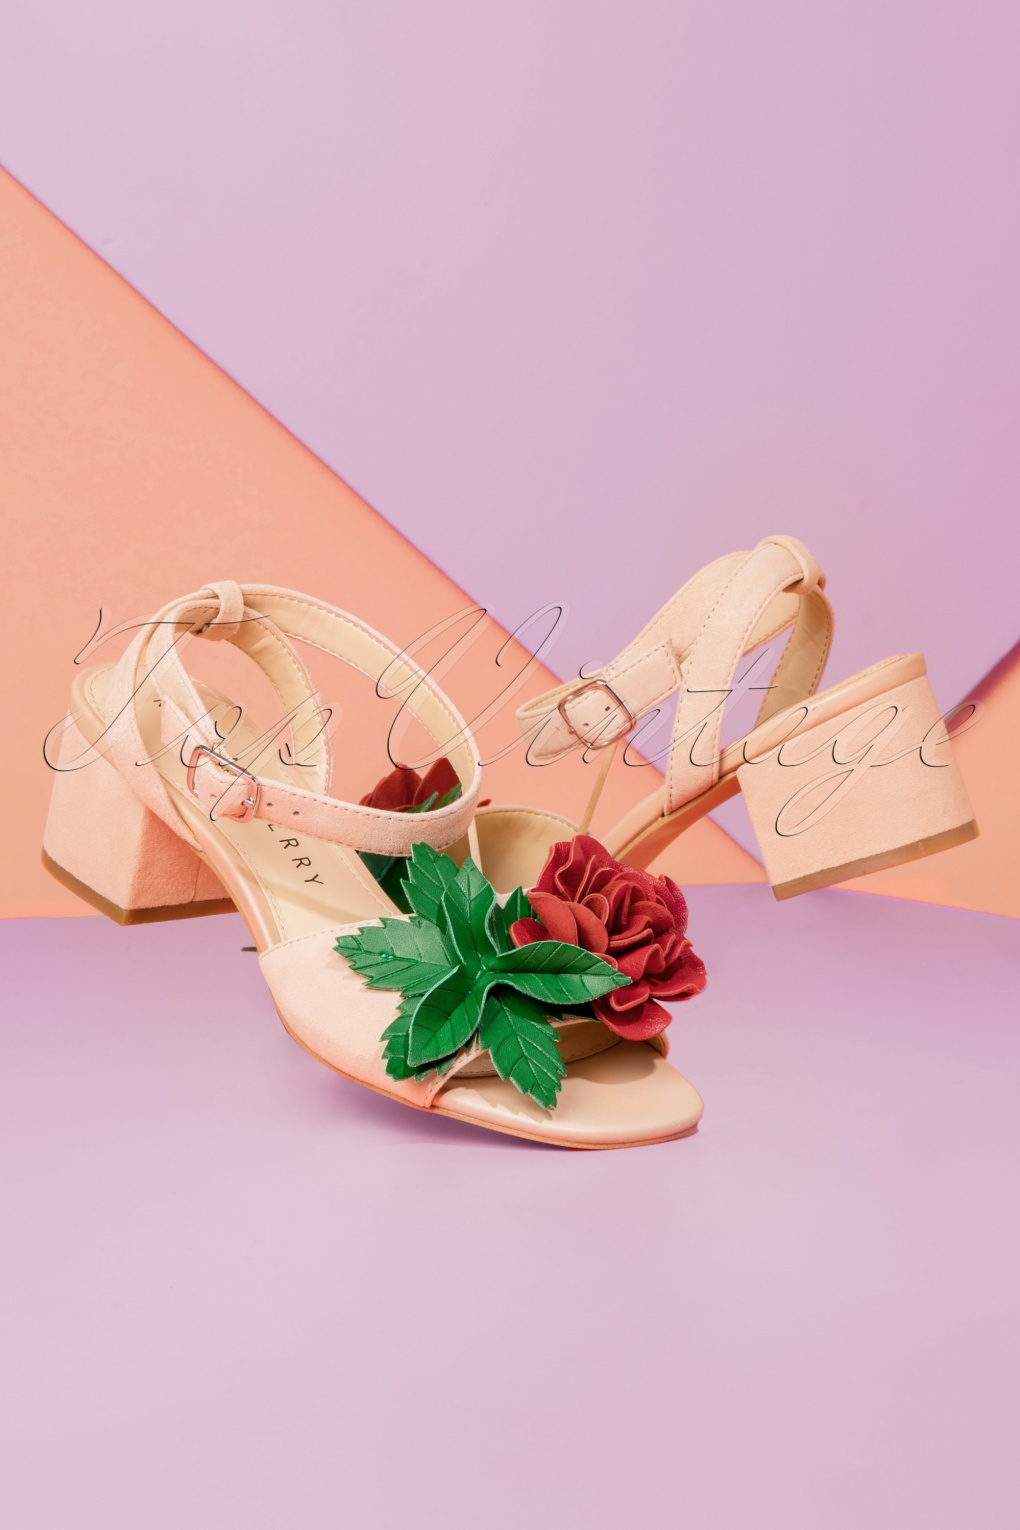 1960s Inspired Fashion: Recreate the Look 60s Elanor Suede Sandals in Blush Nude £115.09 AT vintagedancer.com